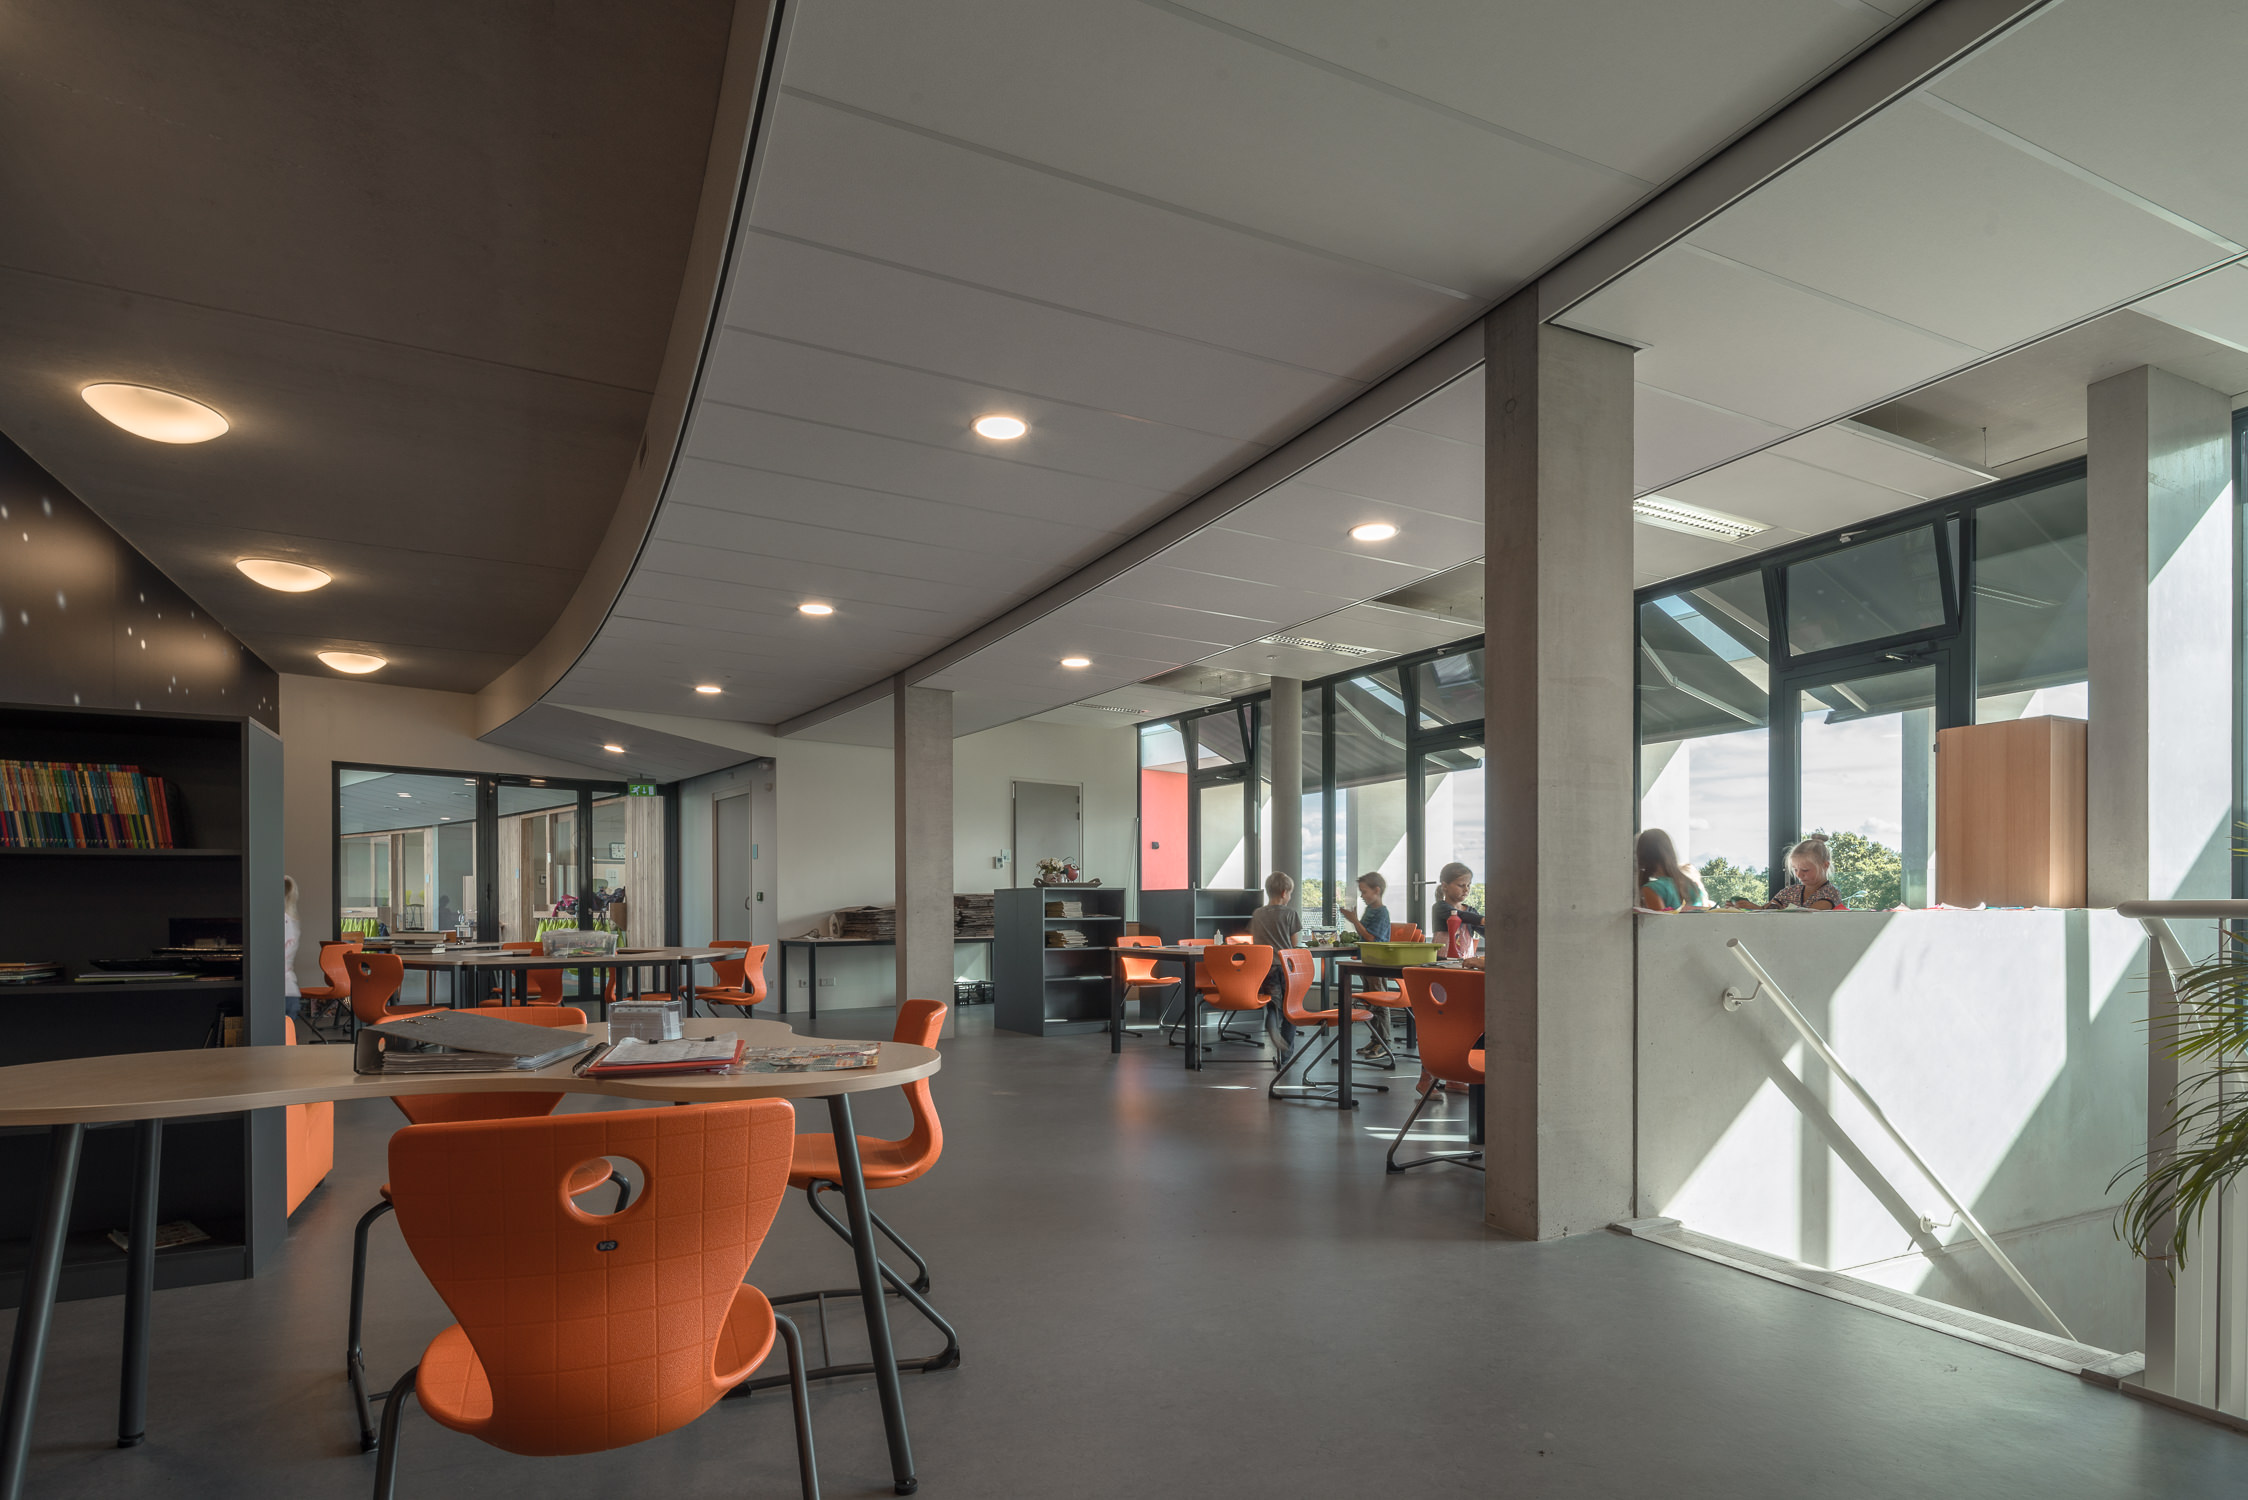 mark-hadden-architecture-photographer-architectuur-interieur-fotografie-london-amsterdam-team-4-zuidhorn-school-231.jpg